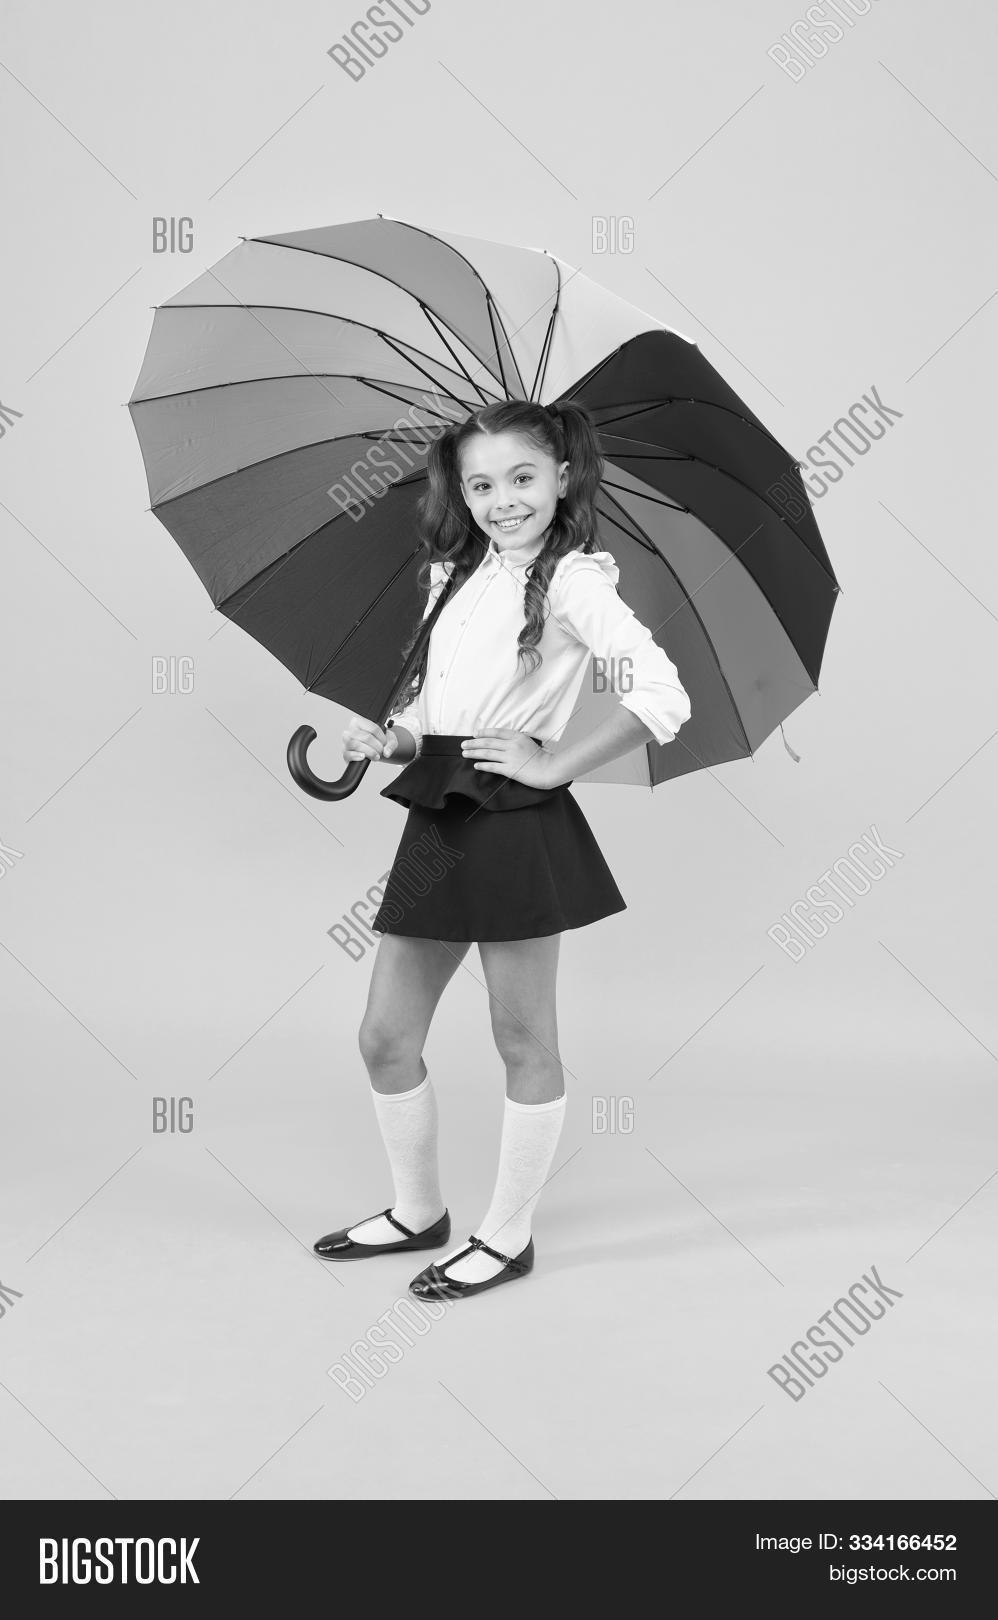 accessory,adorable,autumn,baby,background,beauty,brunette,casual,charm,charming,child,childhood,color,colorful,cute,design,equipment,fall,fashion,fashionable,gear,girl,glamor,glamorous,glamour,gorgeous,hair,kid,little,long,look,lovely,multicoloured,pretty,rain,rainbow,school,schoolchild,schoolgirl,small,style,stylish,trend,trendy,umbrella,yellow